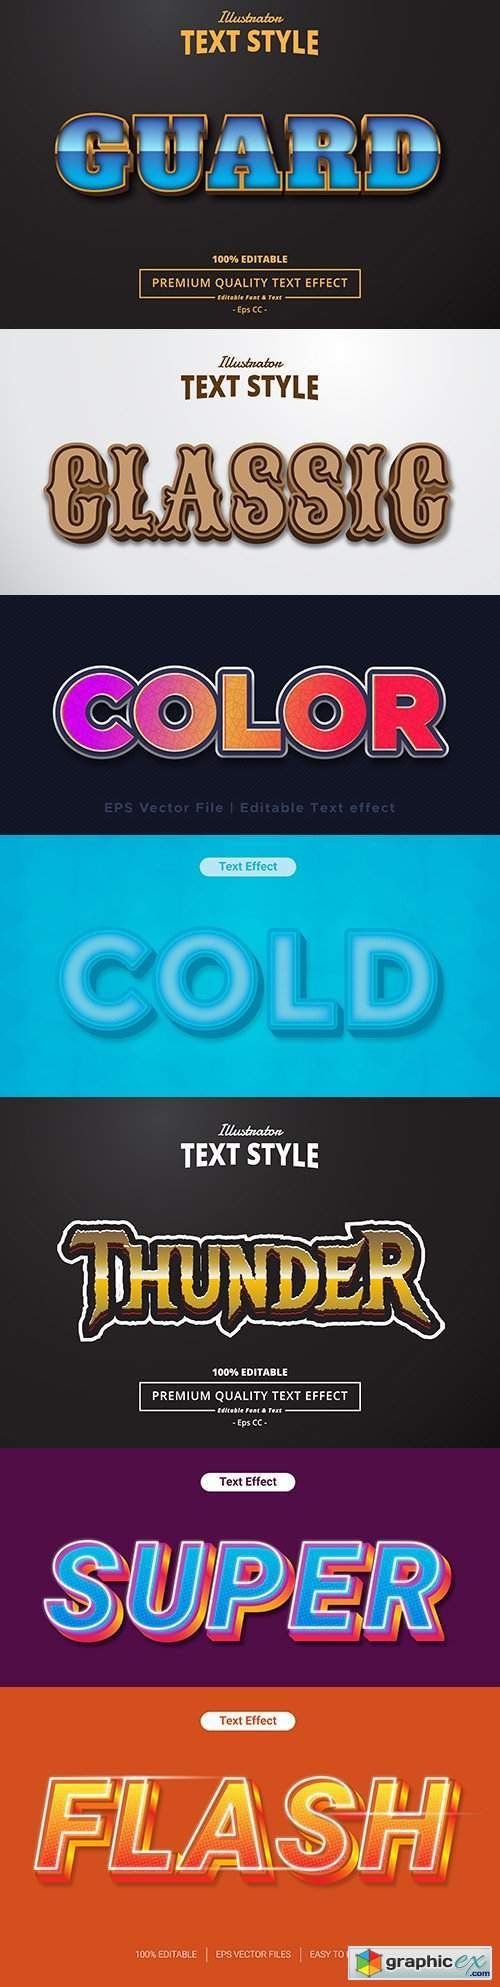 Editable font effect text collection illustration design 90